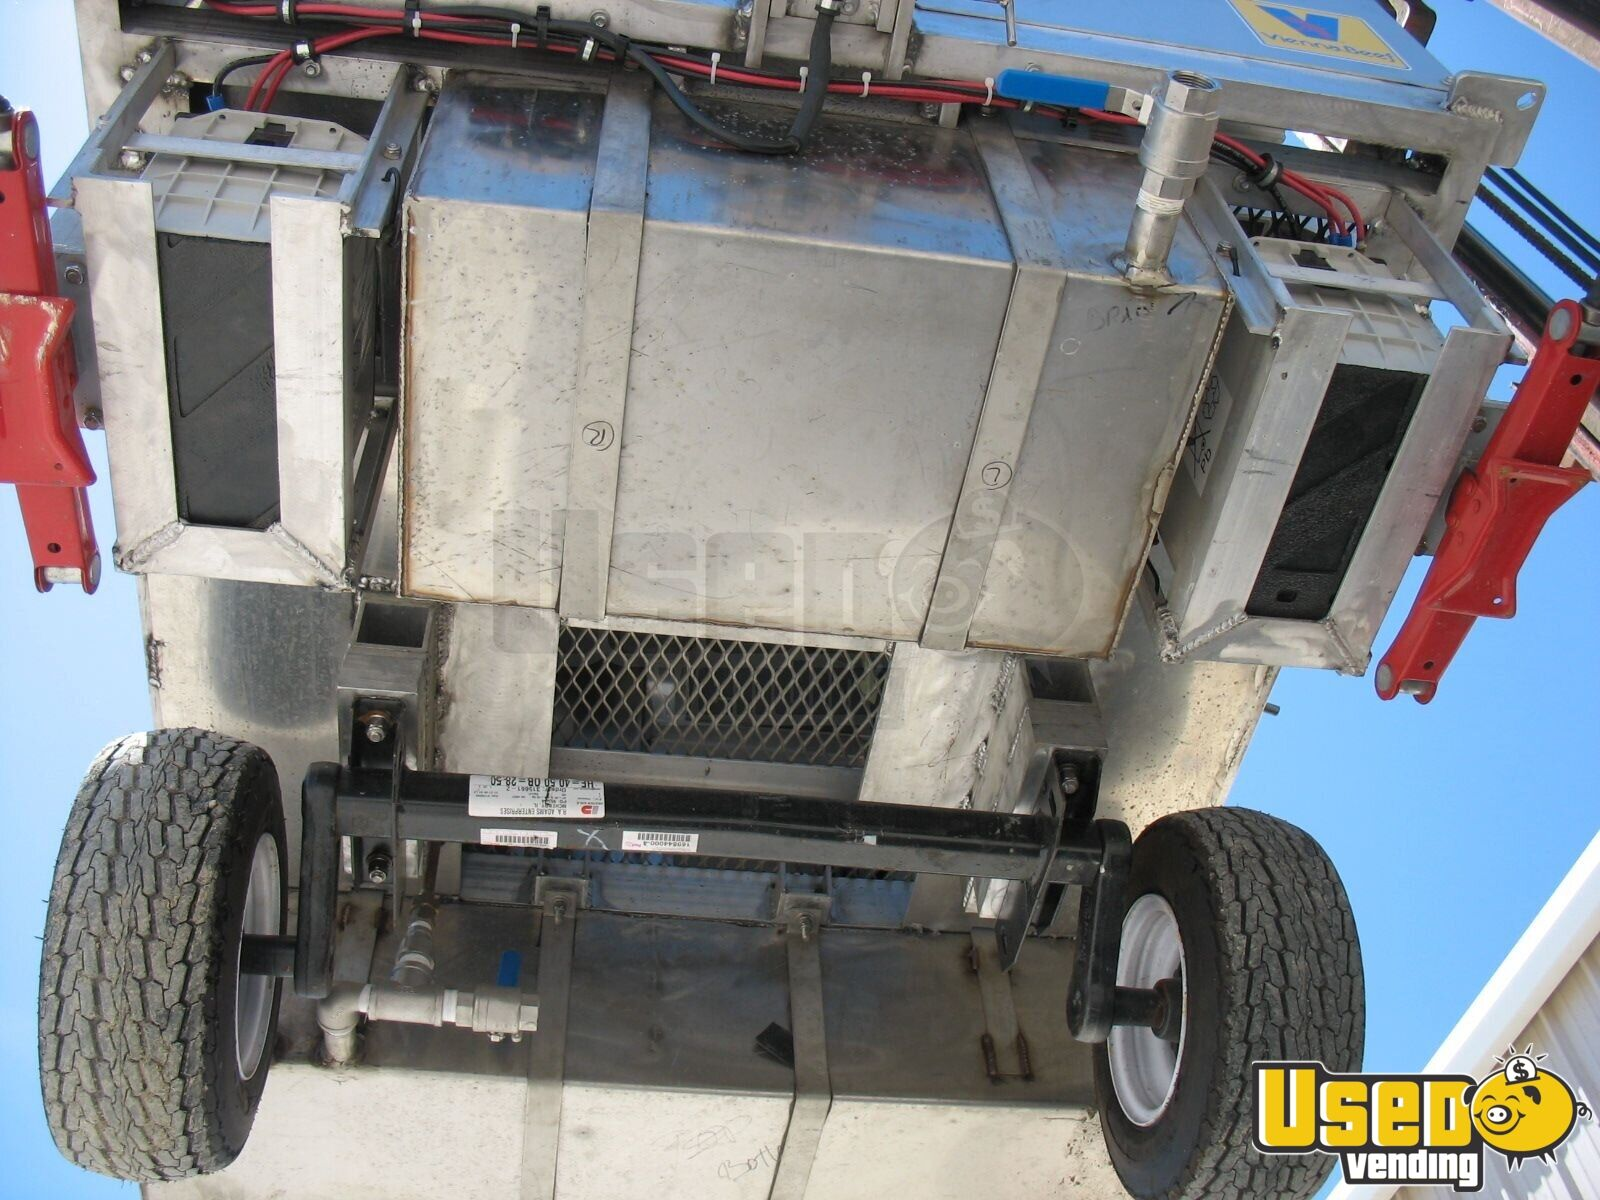 2009 Top Gun Top Dog Self Sufficient Mobile, Model Slt Cart 42 Texas for Sale - 42